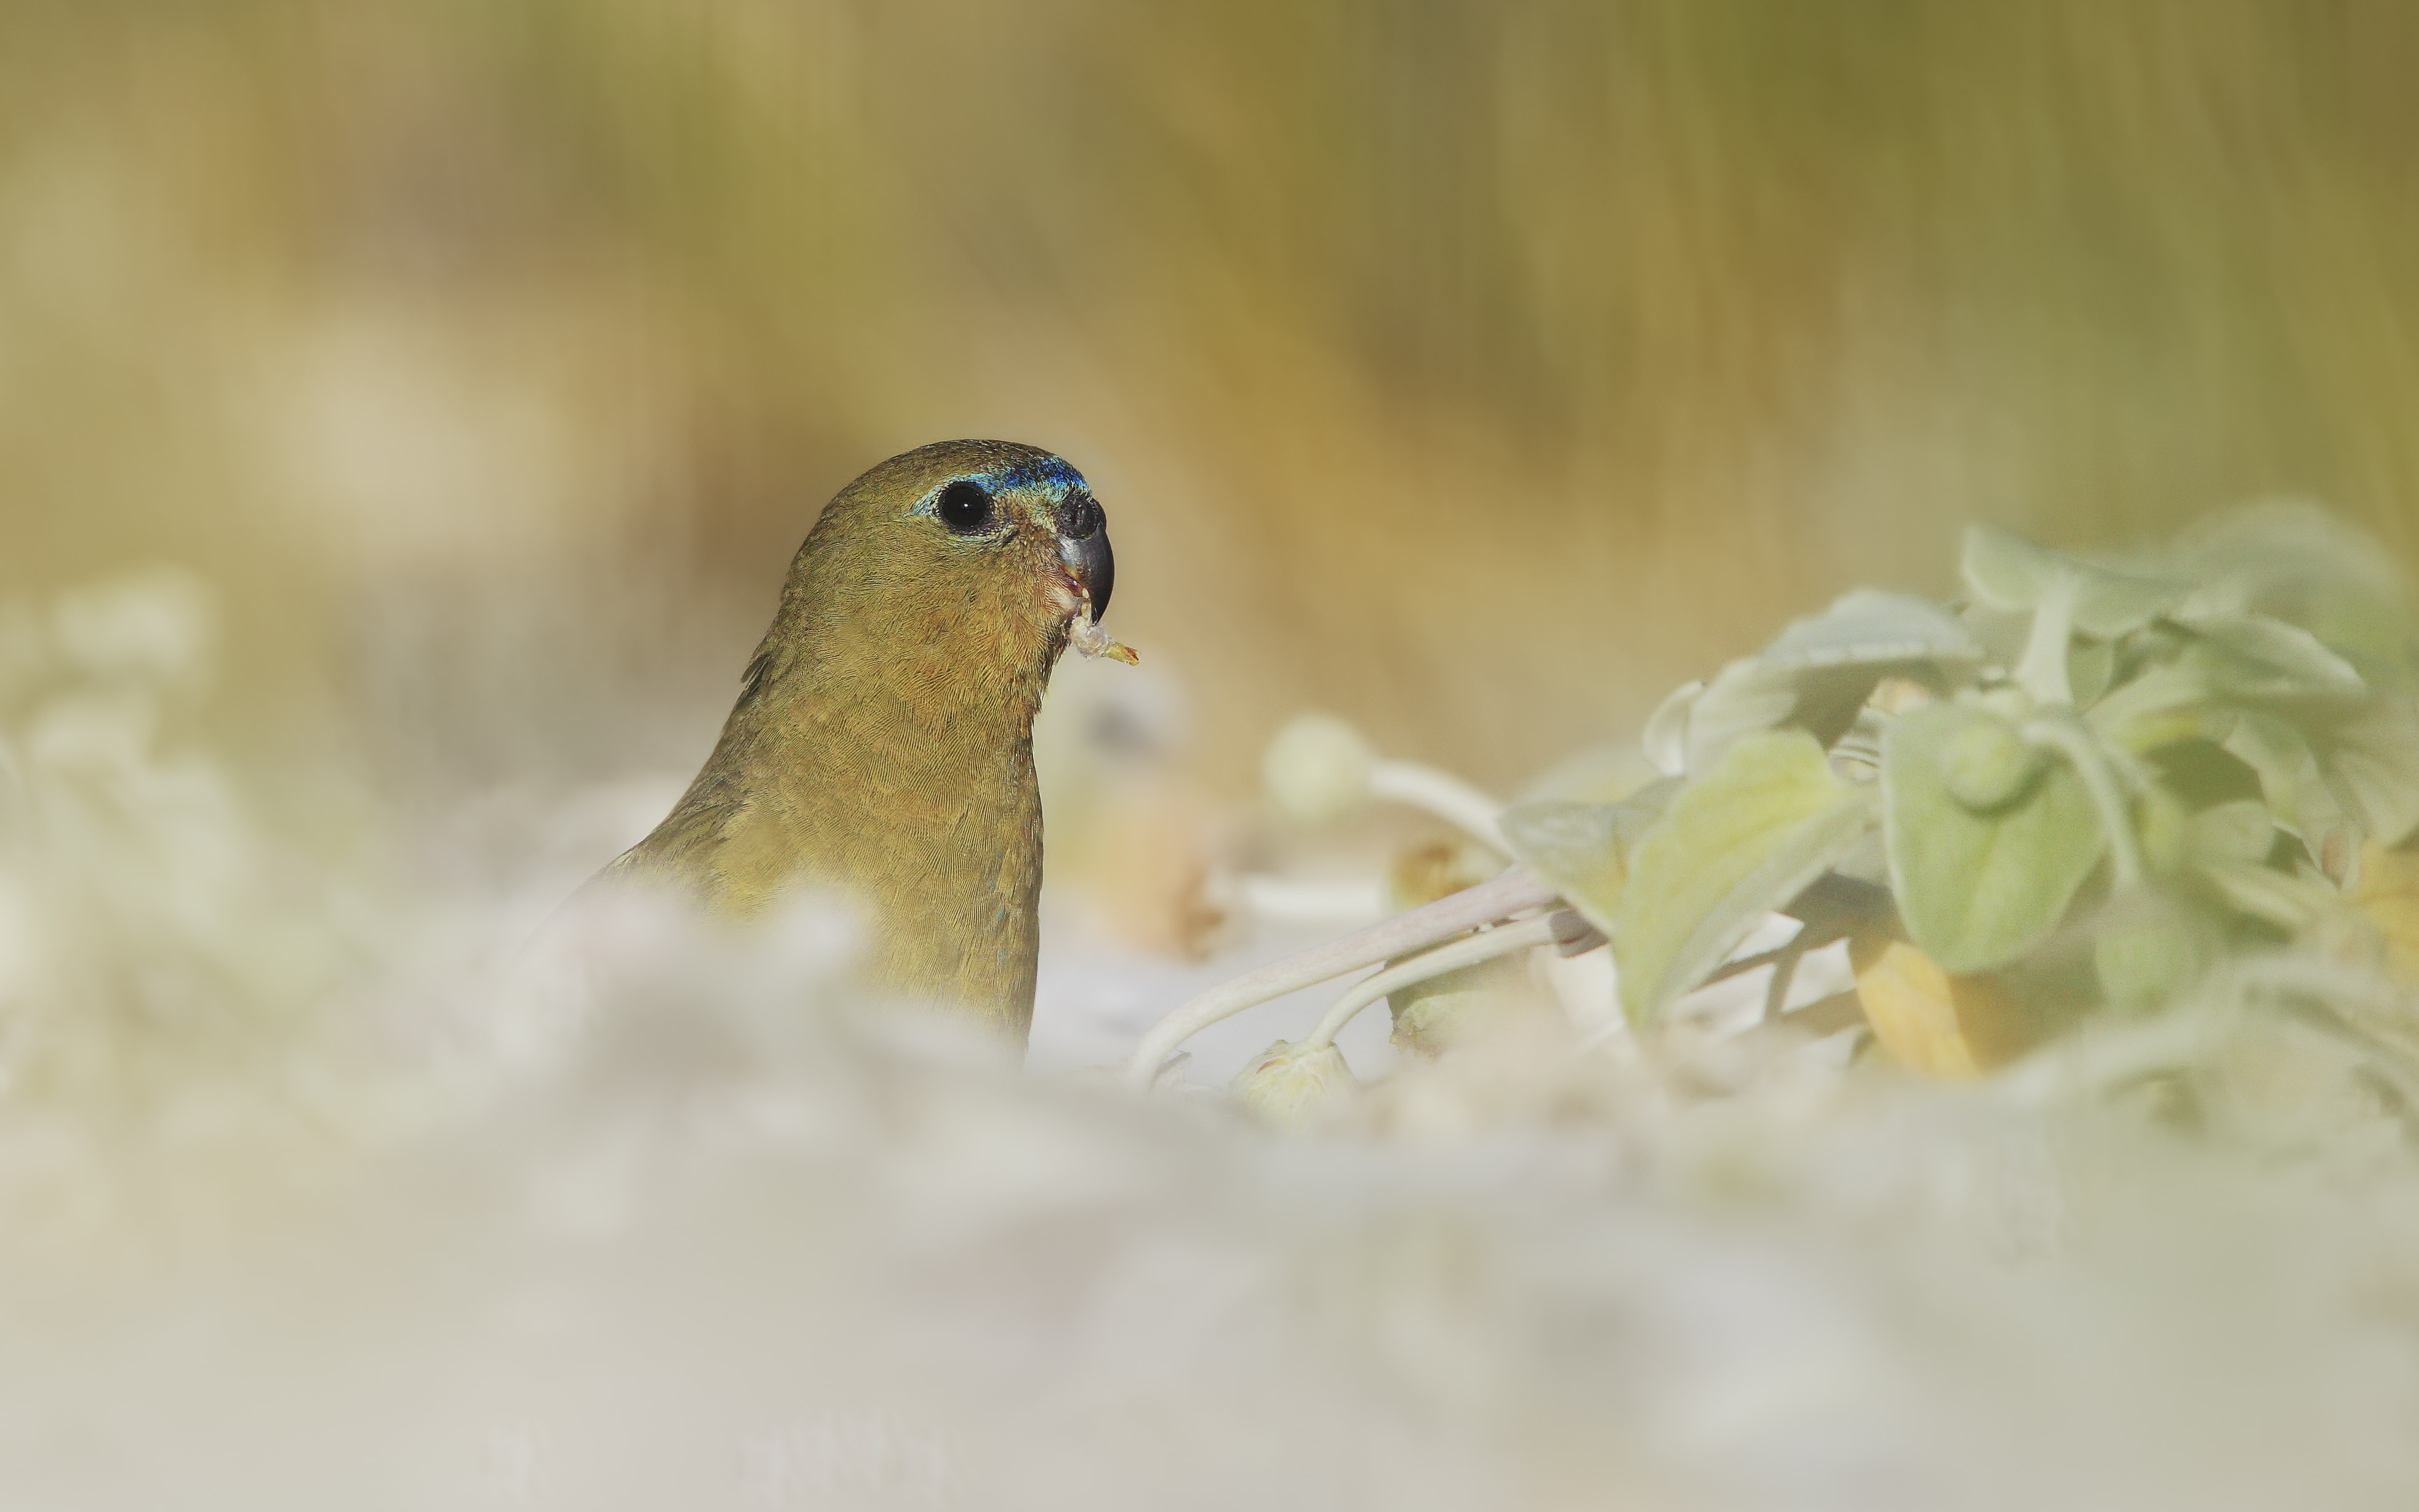 Macro of a light green bird with a bright blue streak on its forehead by some plants